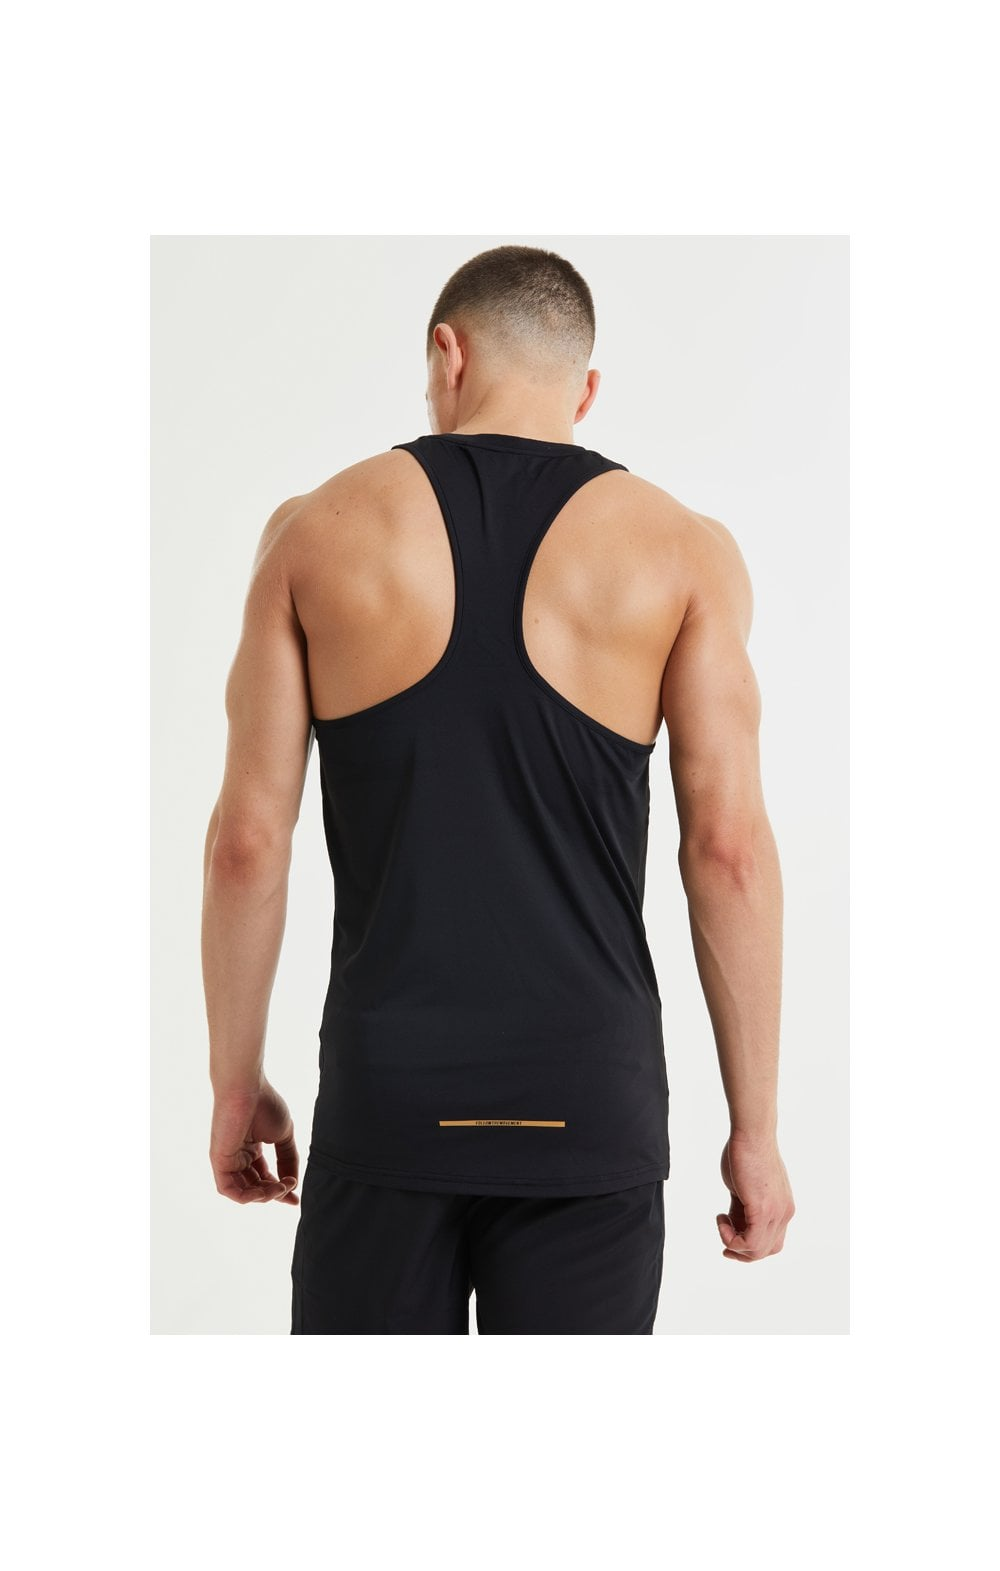 Load image into Gallery viewer, SikSilk Pressure Vest - Black (5)